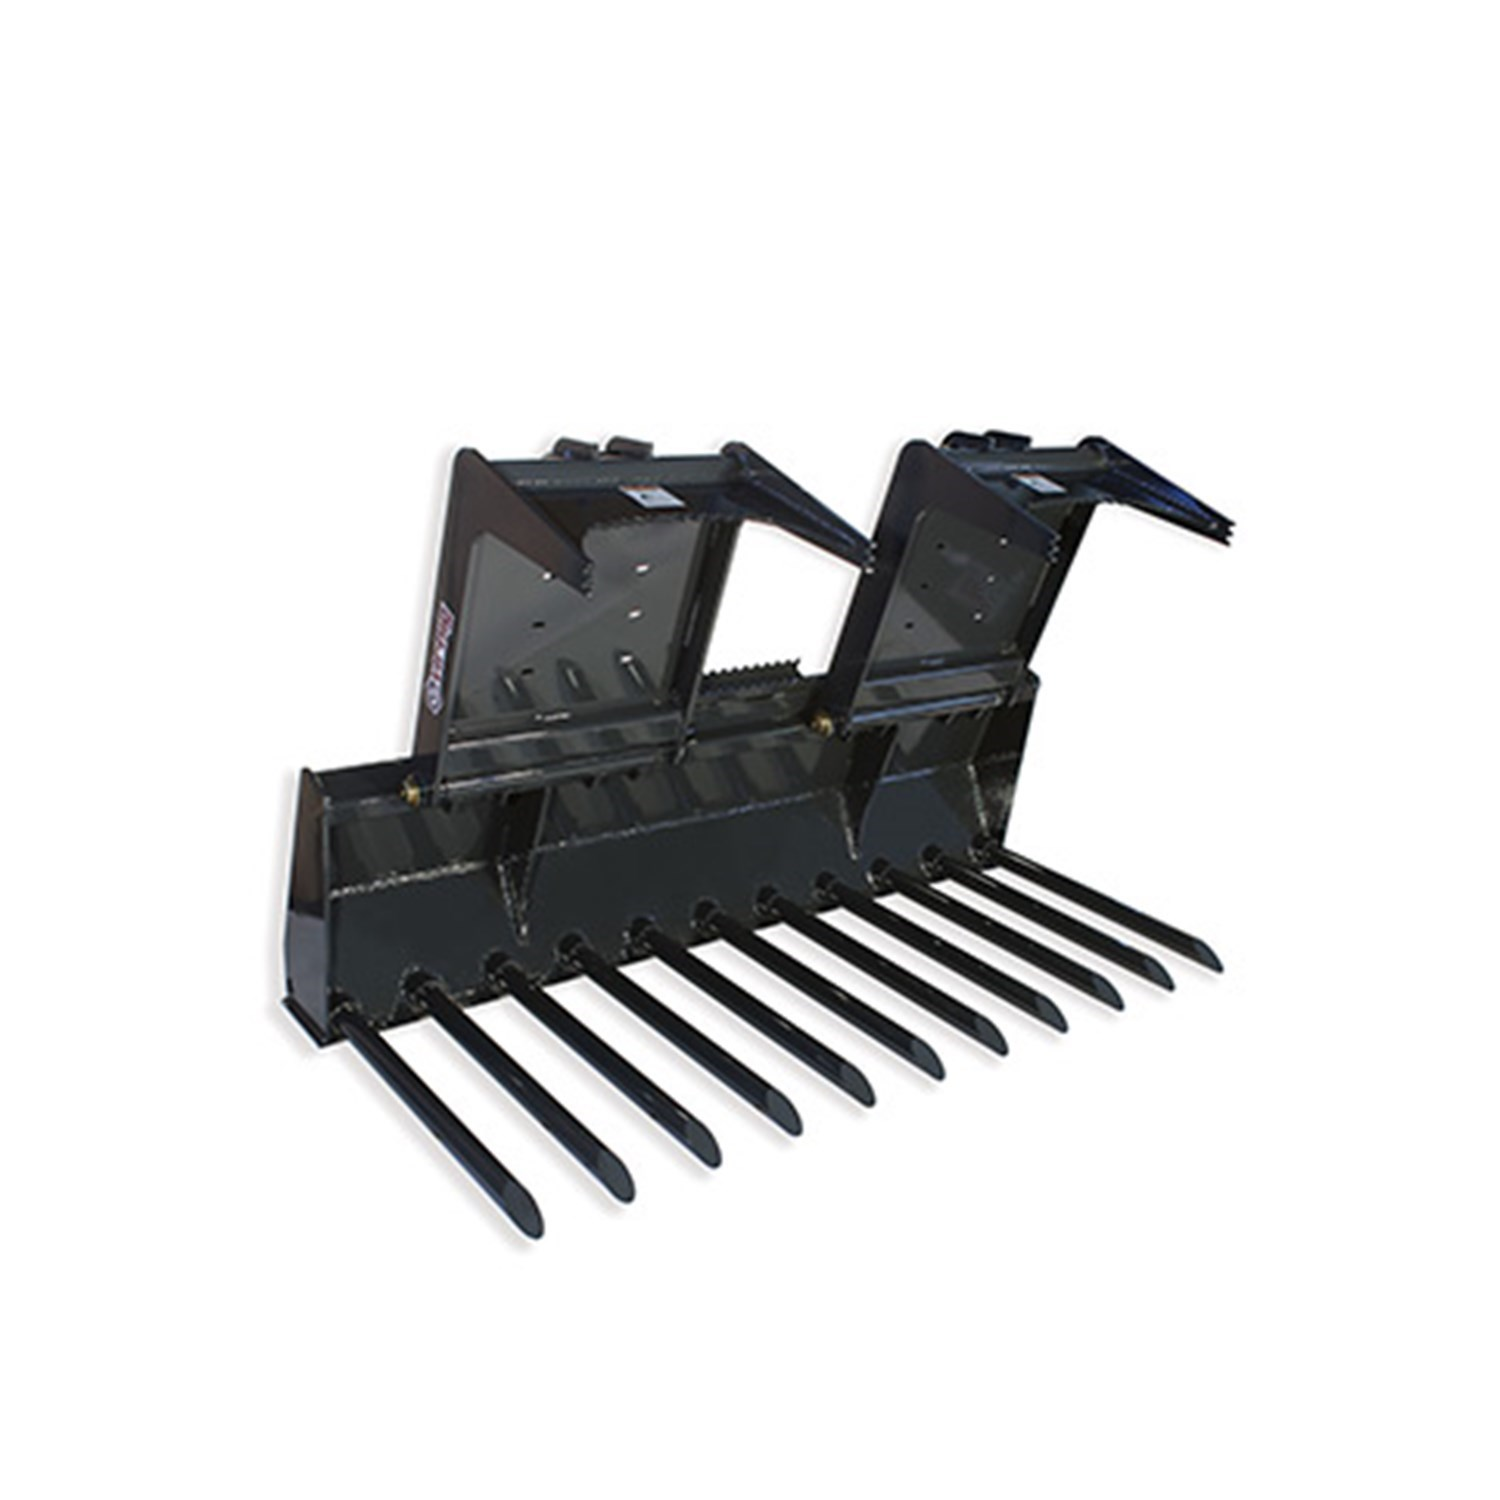 VIRNIG TBG HEAVY-DUTY TINE FORK GRAPPLE SERIES